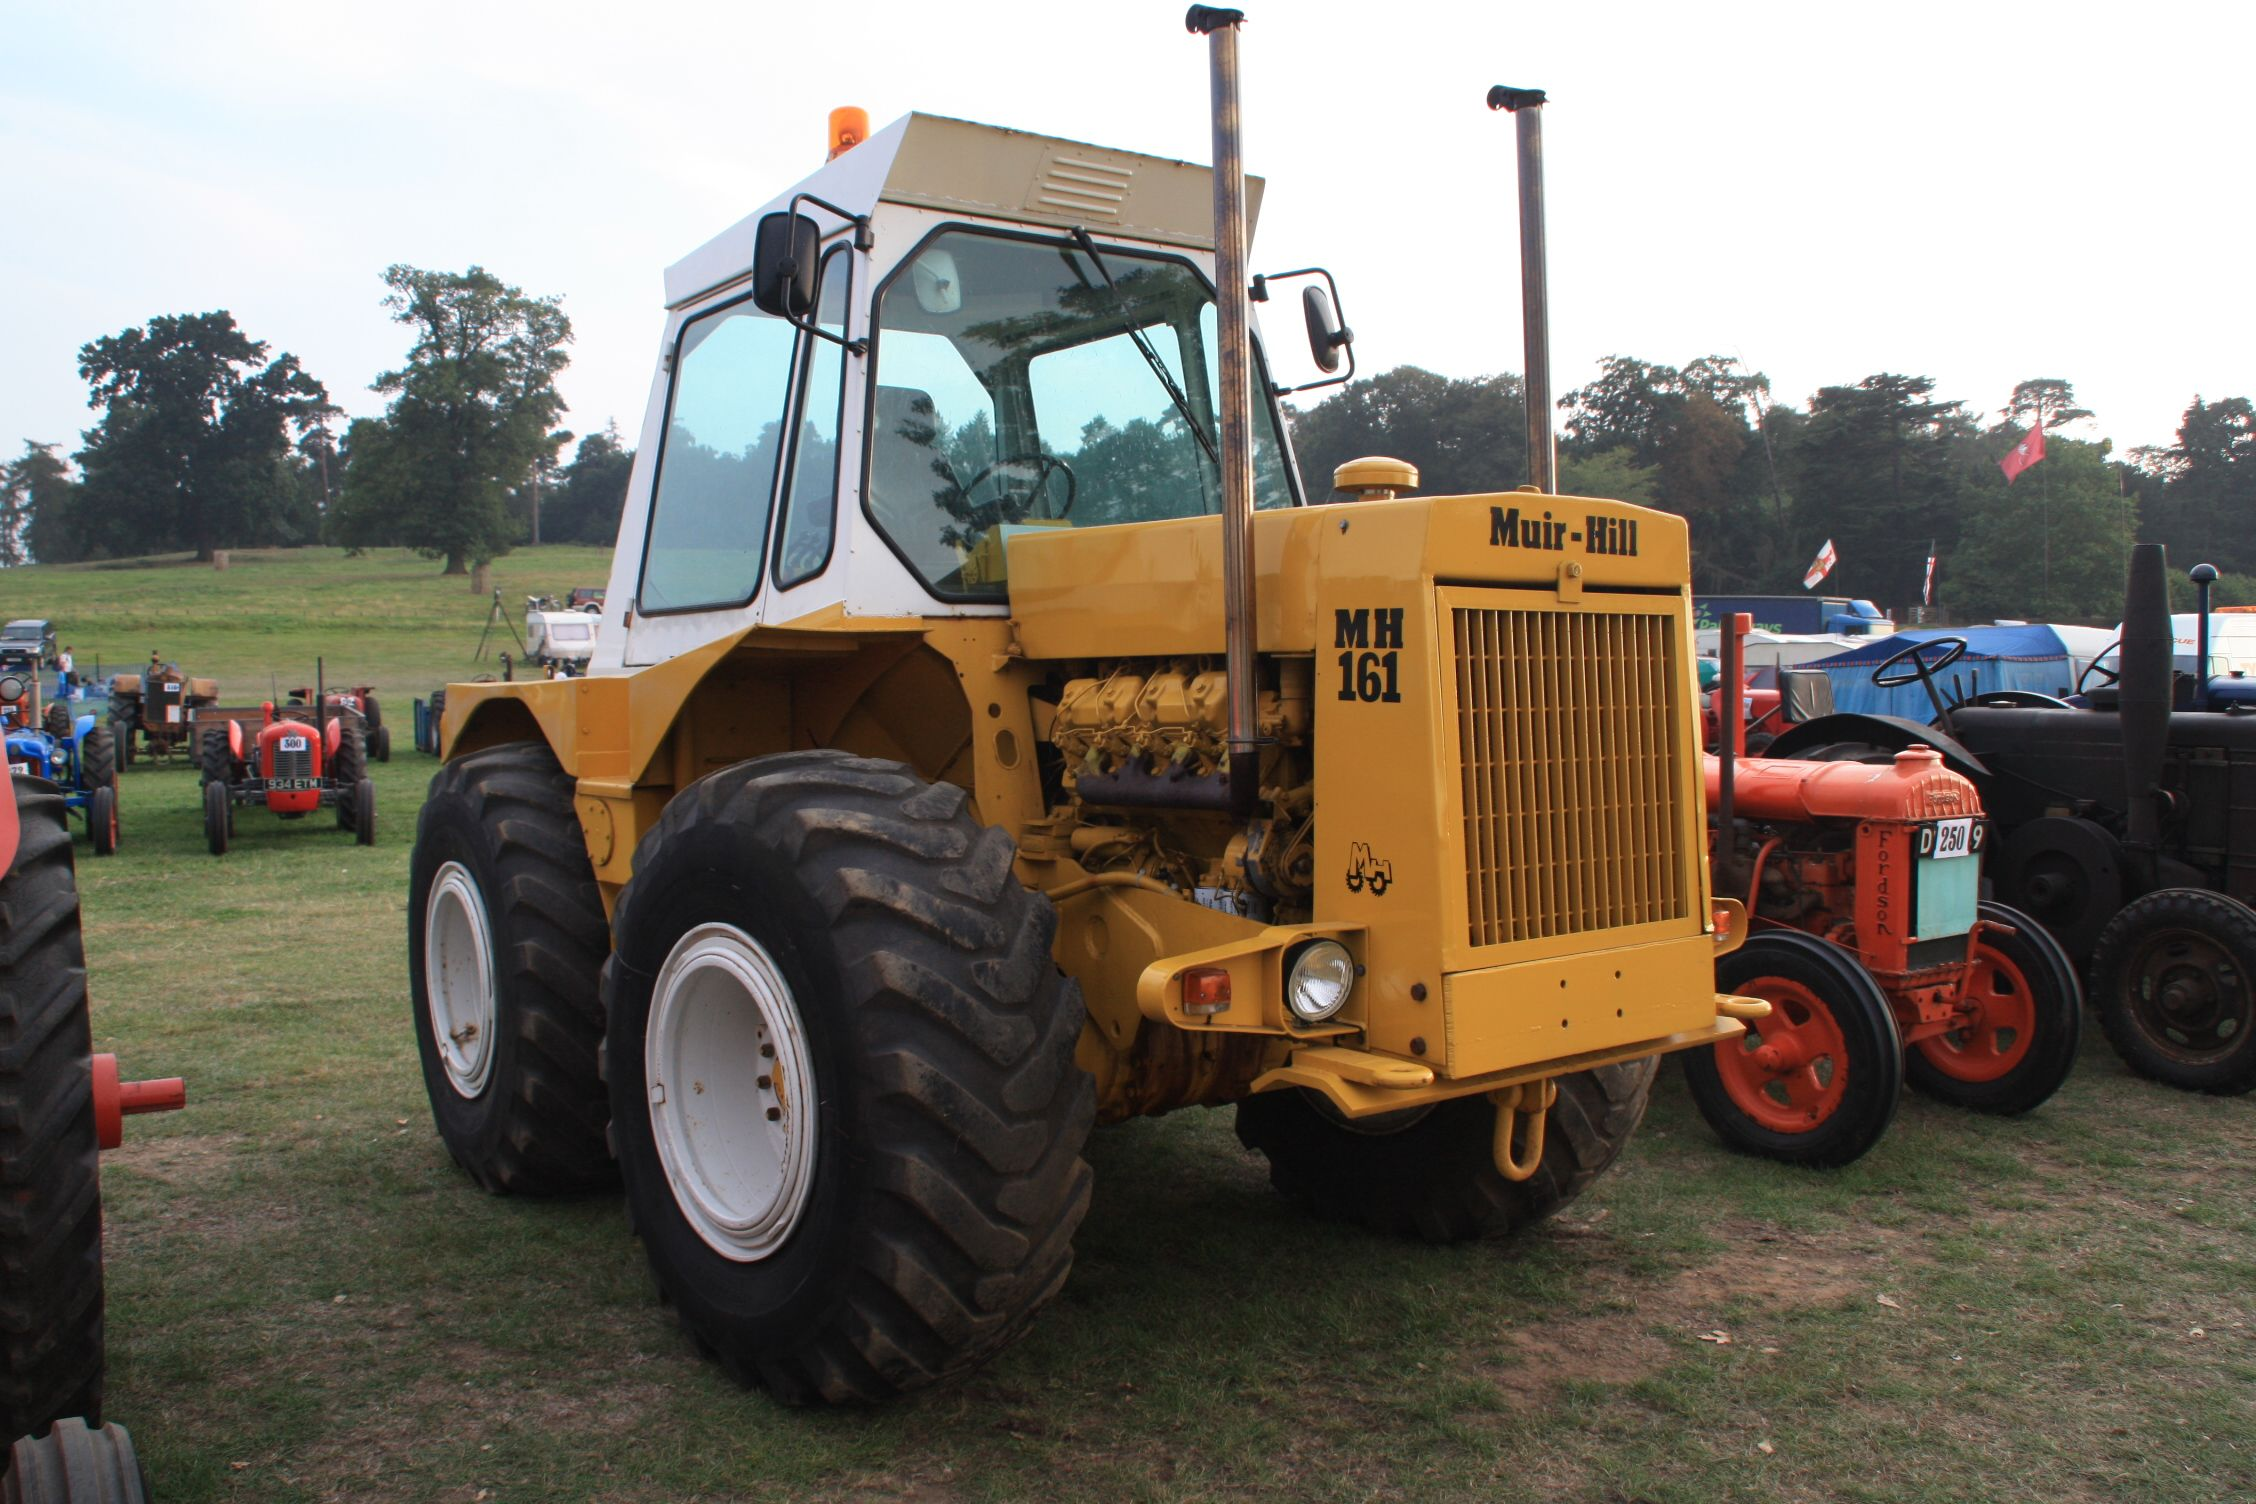 muirhill mh161 �� tractor mania �� pinterest